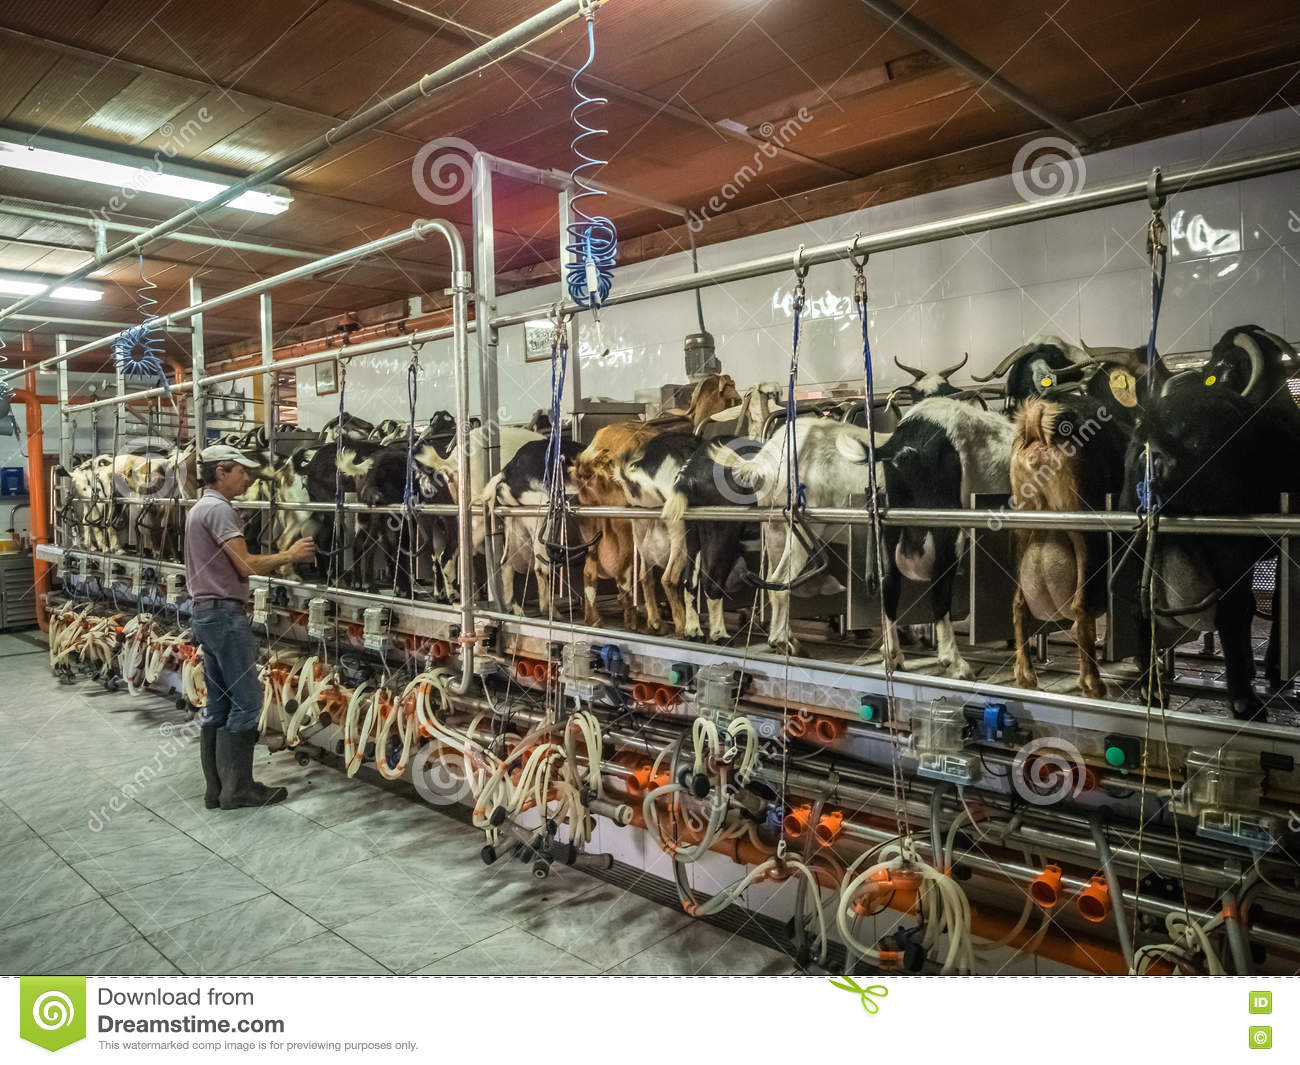 Supervising automated milking